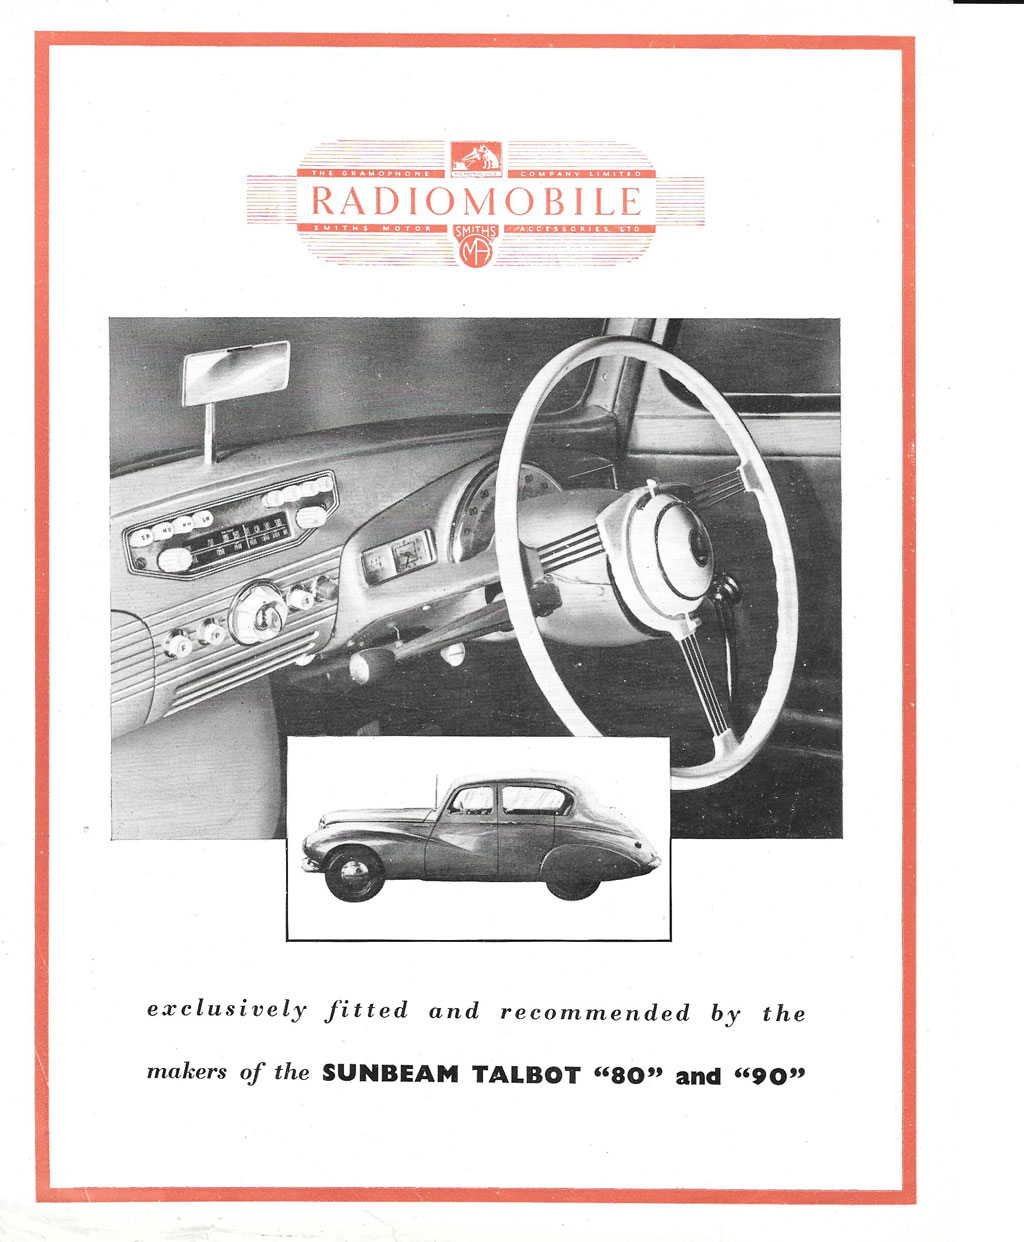 Radiomobile Model 100 in Sunbeam Talbot 80/90